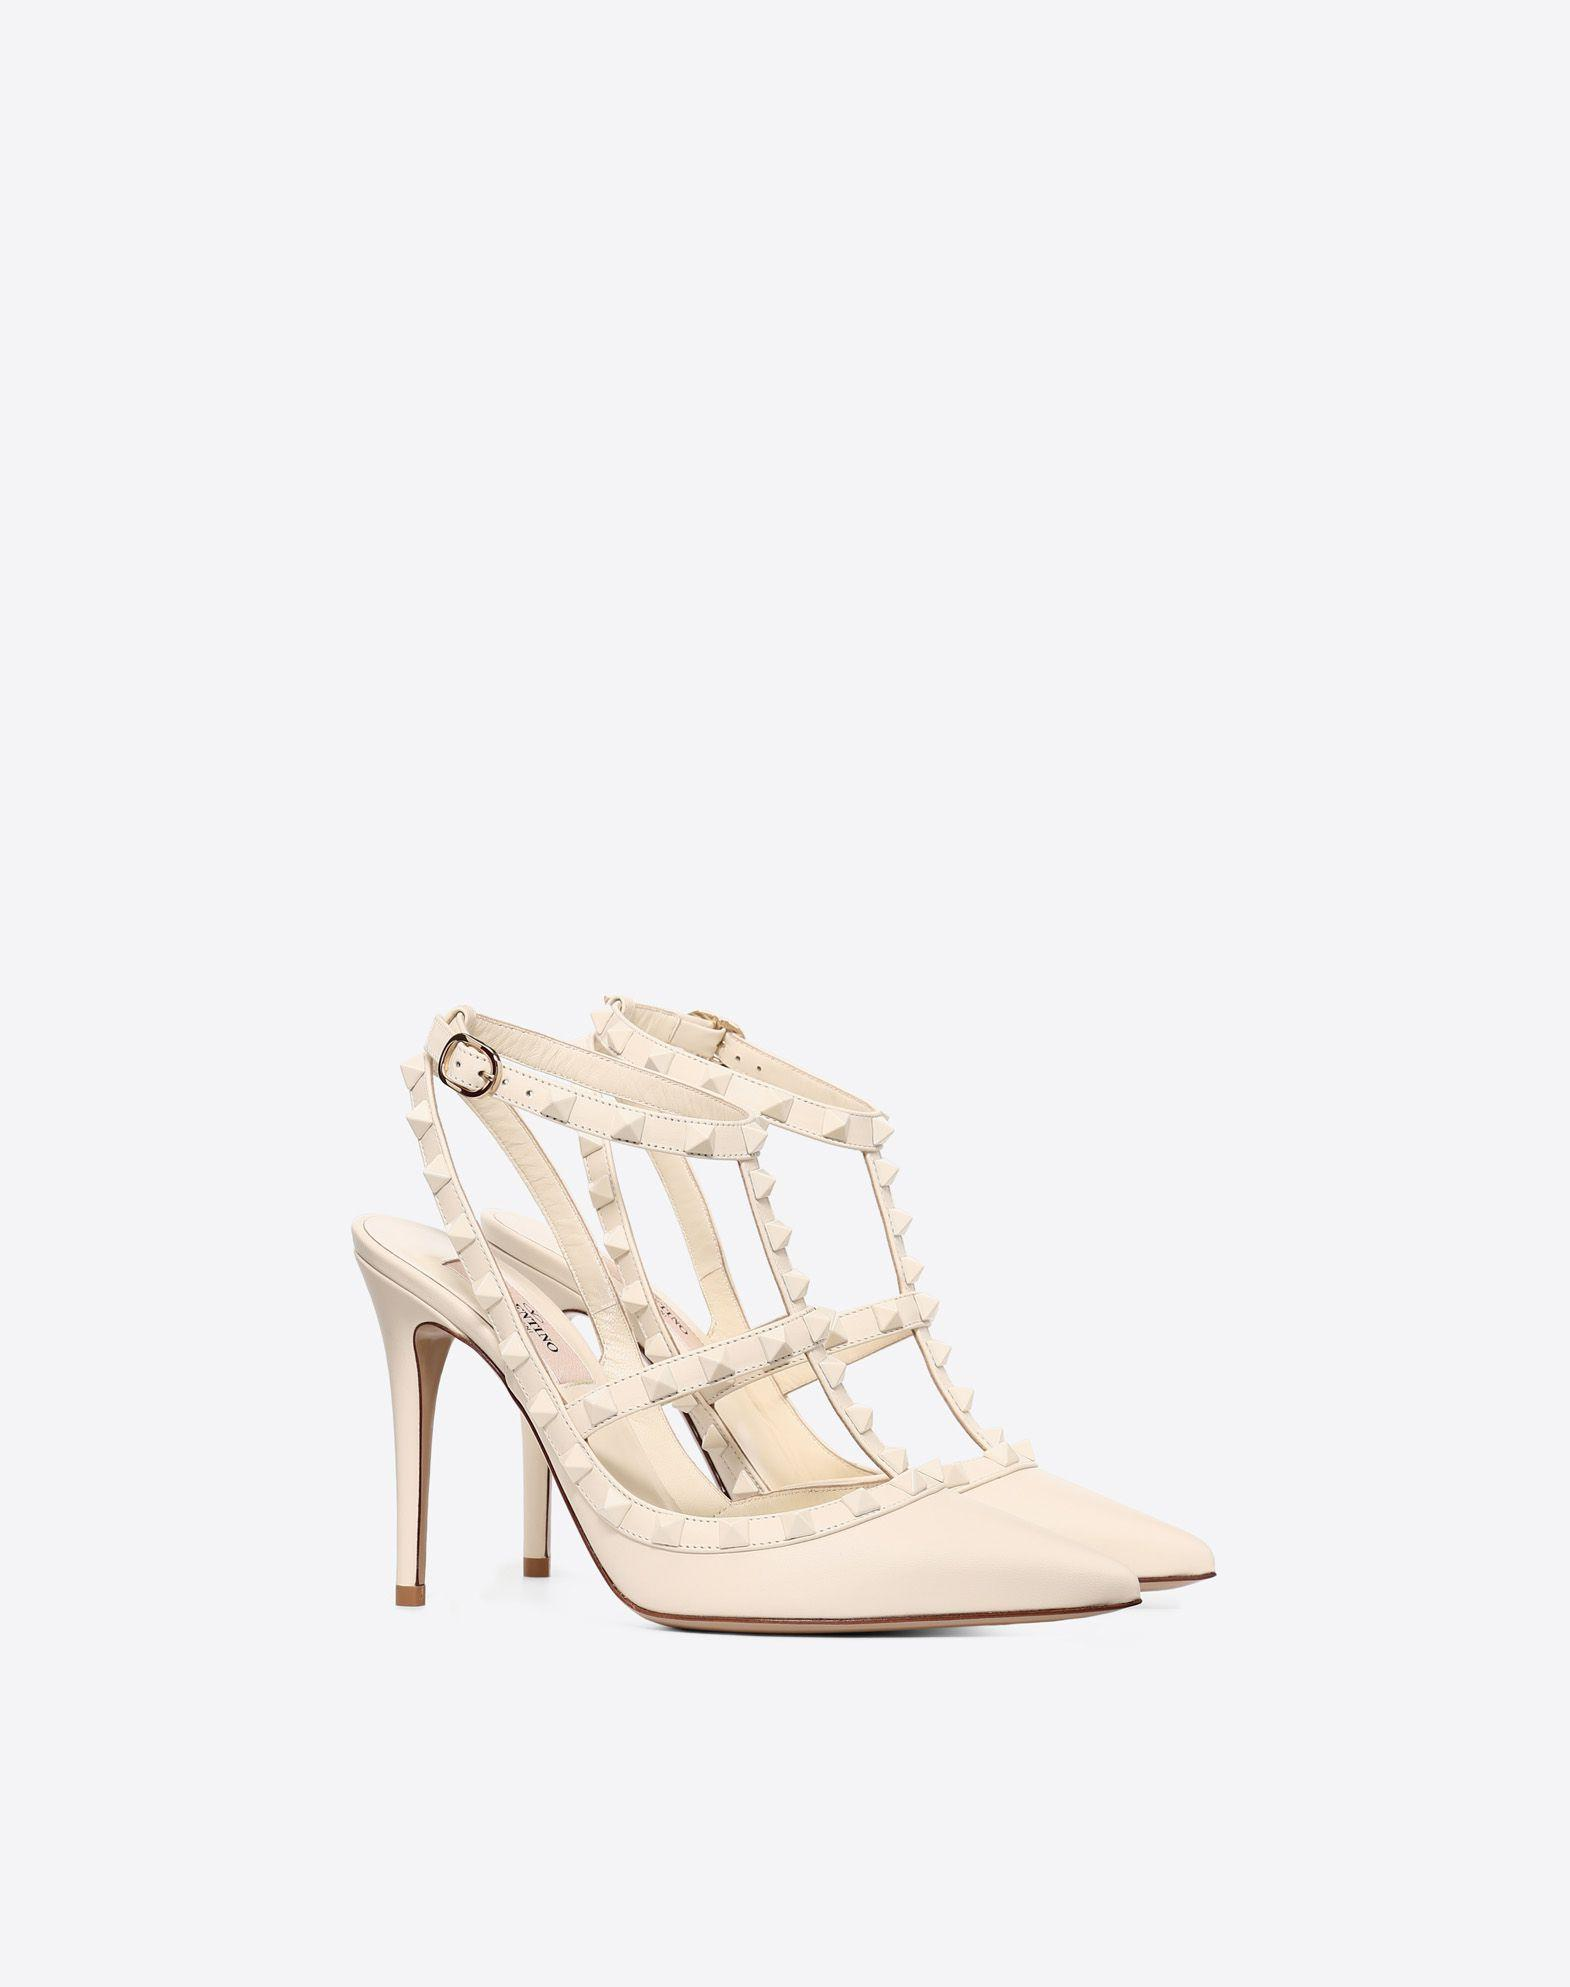 6bd9b4b5341 Valentino Lacquer Stud Rockstud Caged Pump 100Mm In Poudre